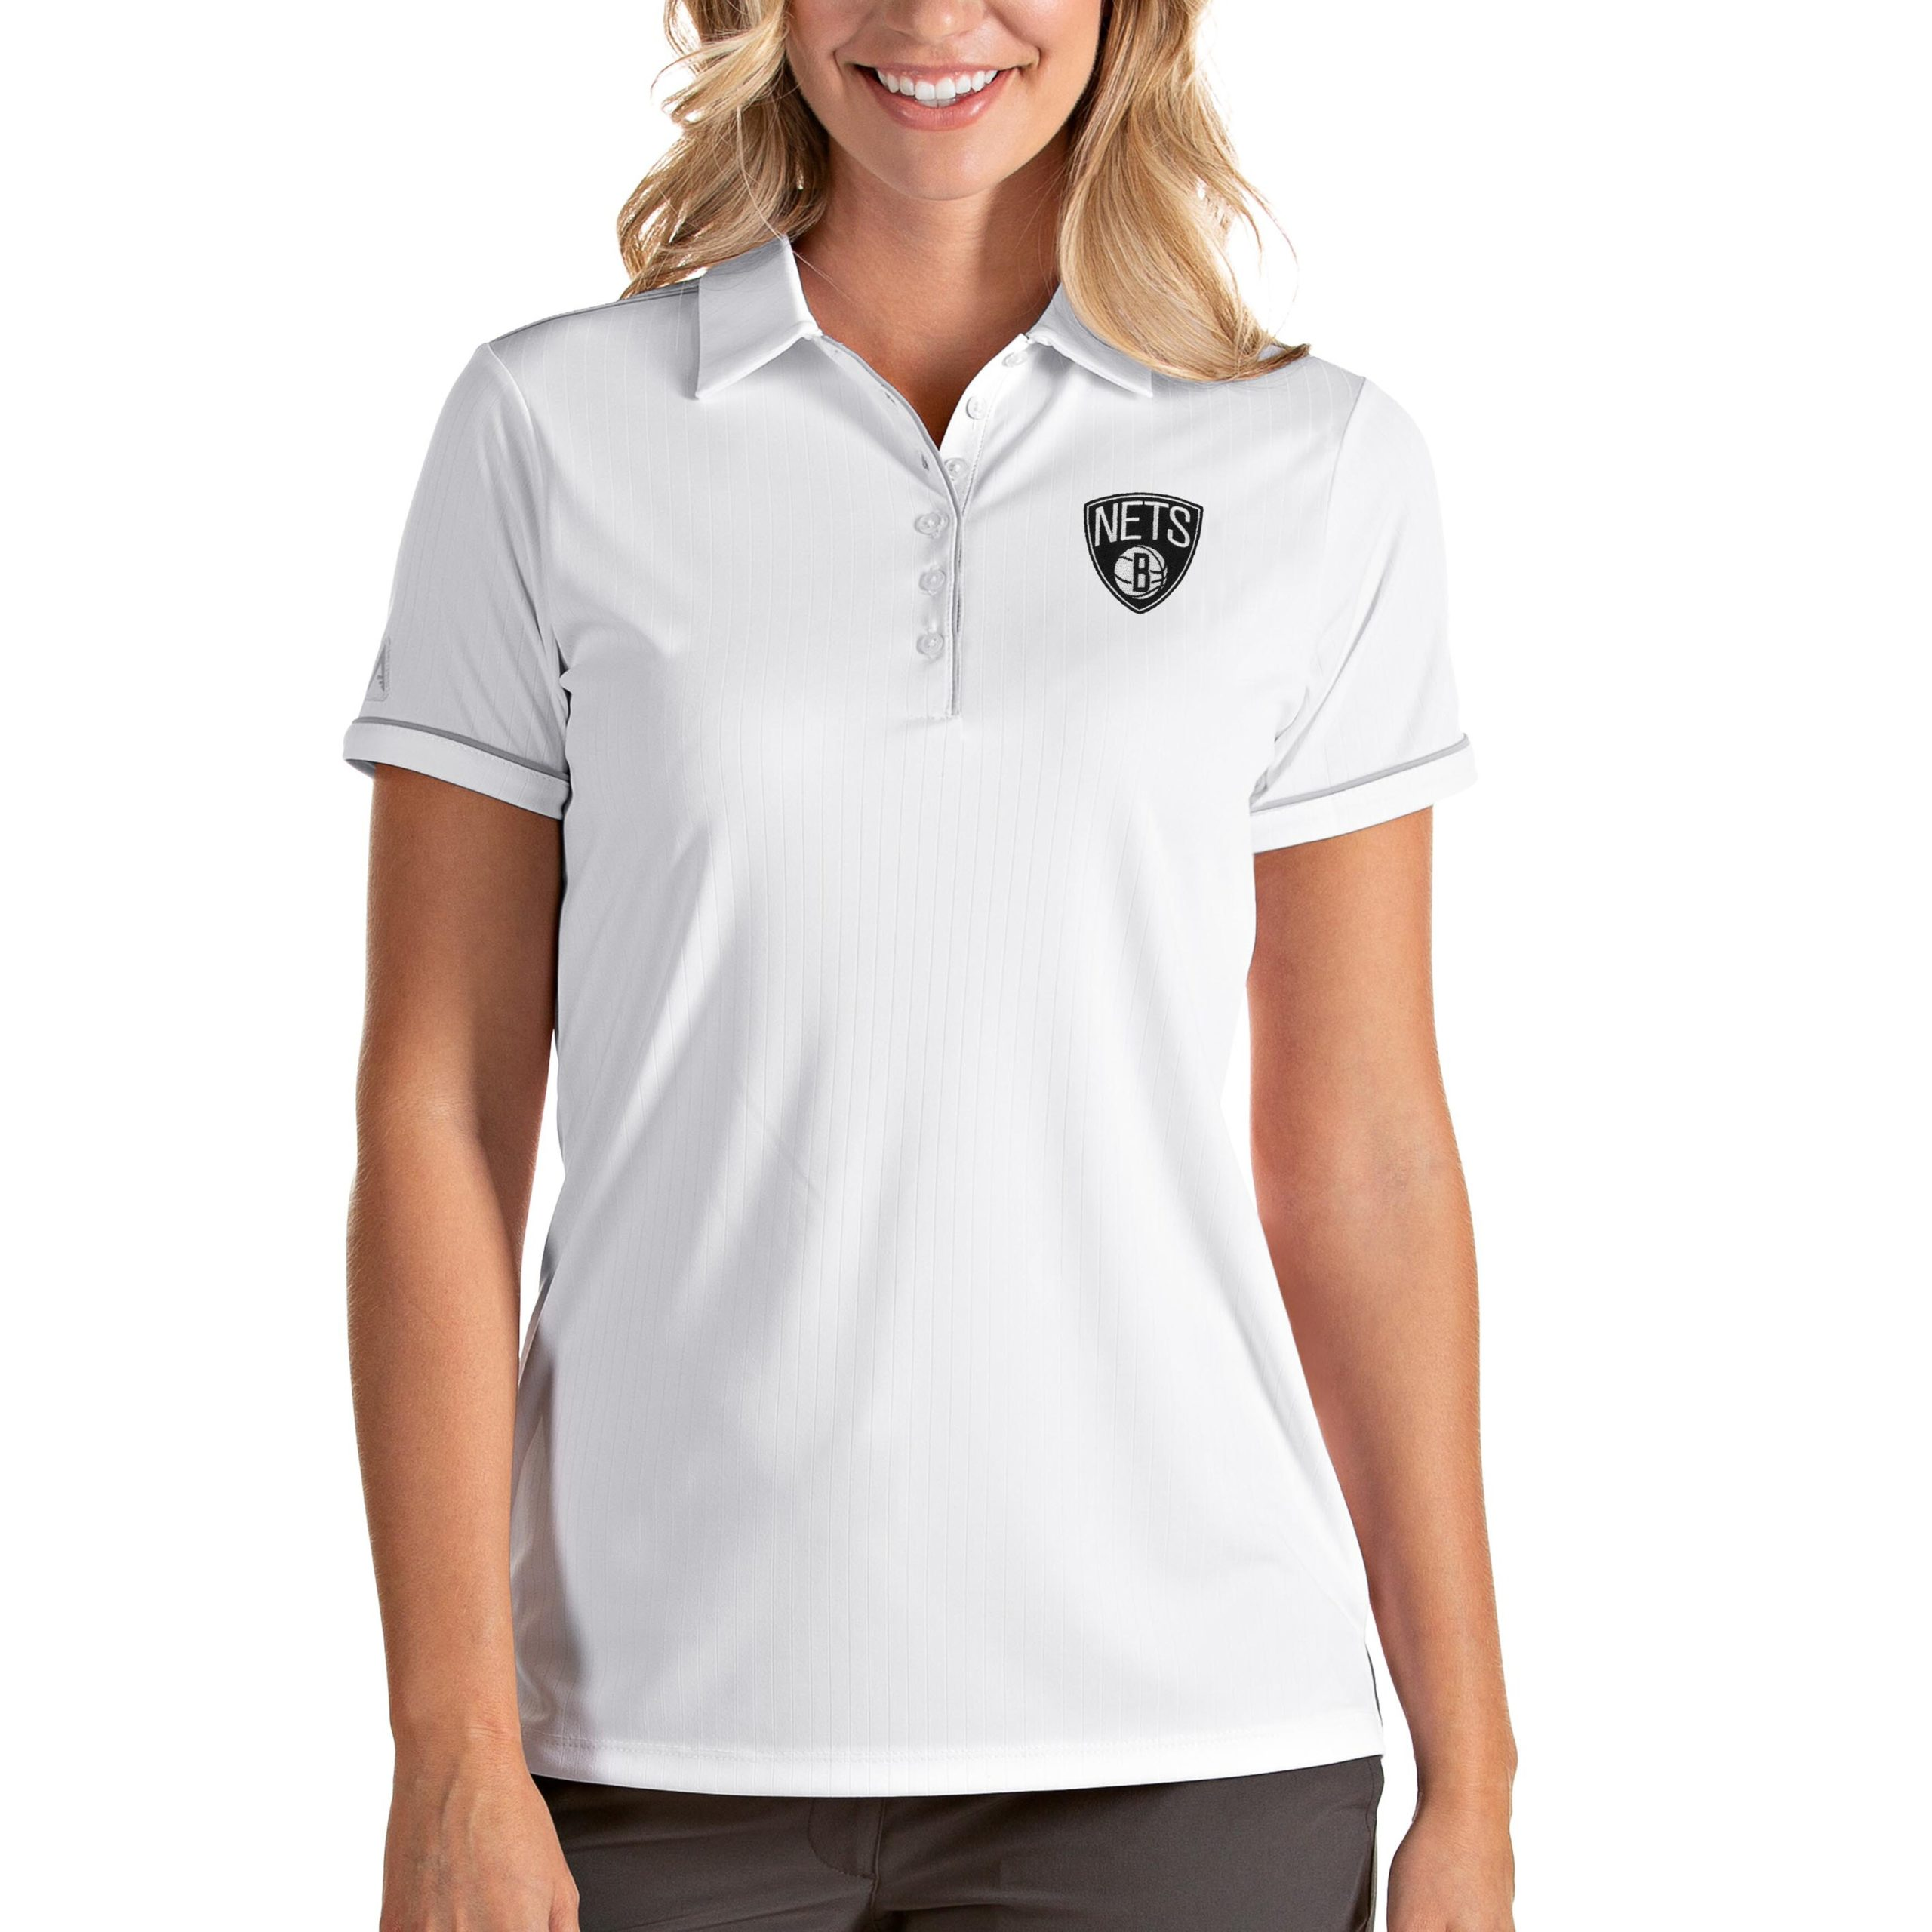 Brooklyn Nets Antigua Women's Salute Polo - White/Silver